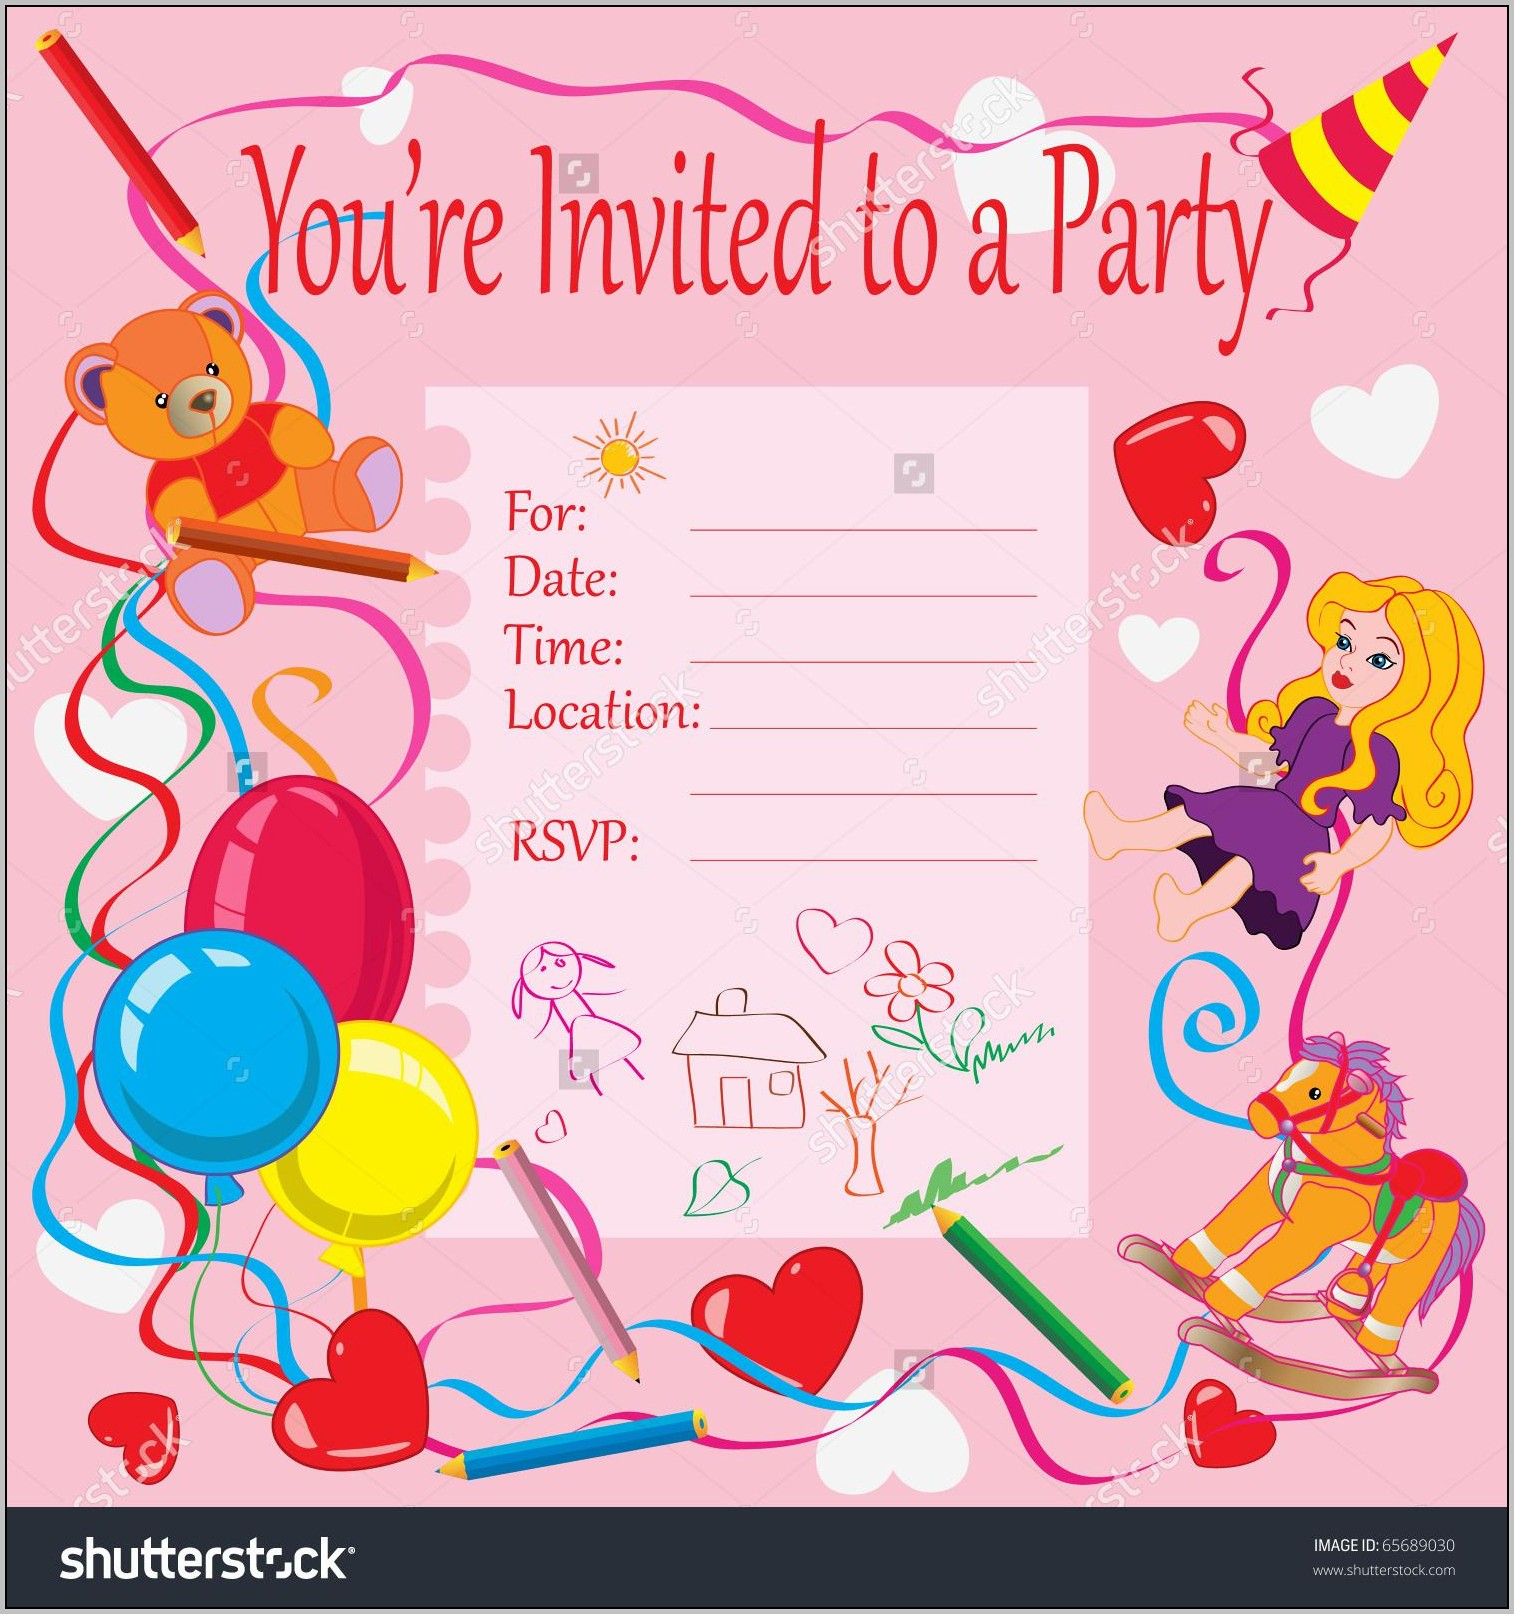 Birthday Invitation Layout Design